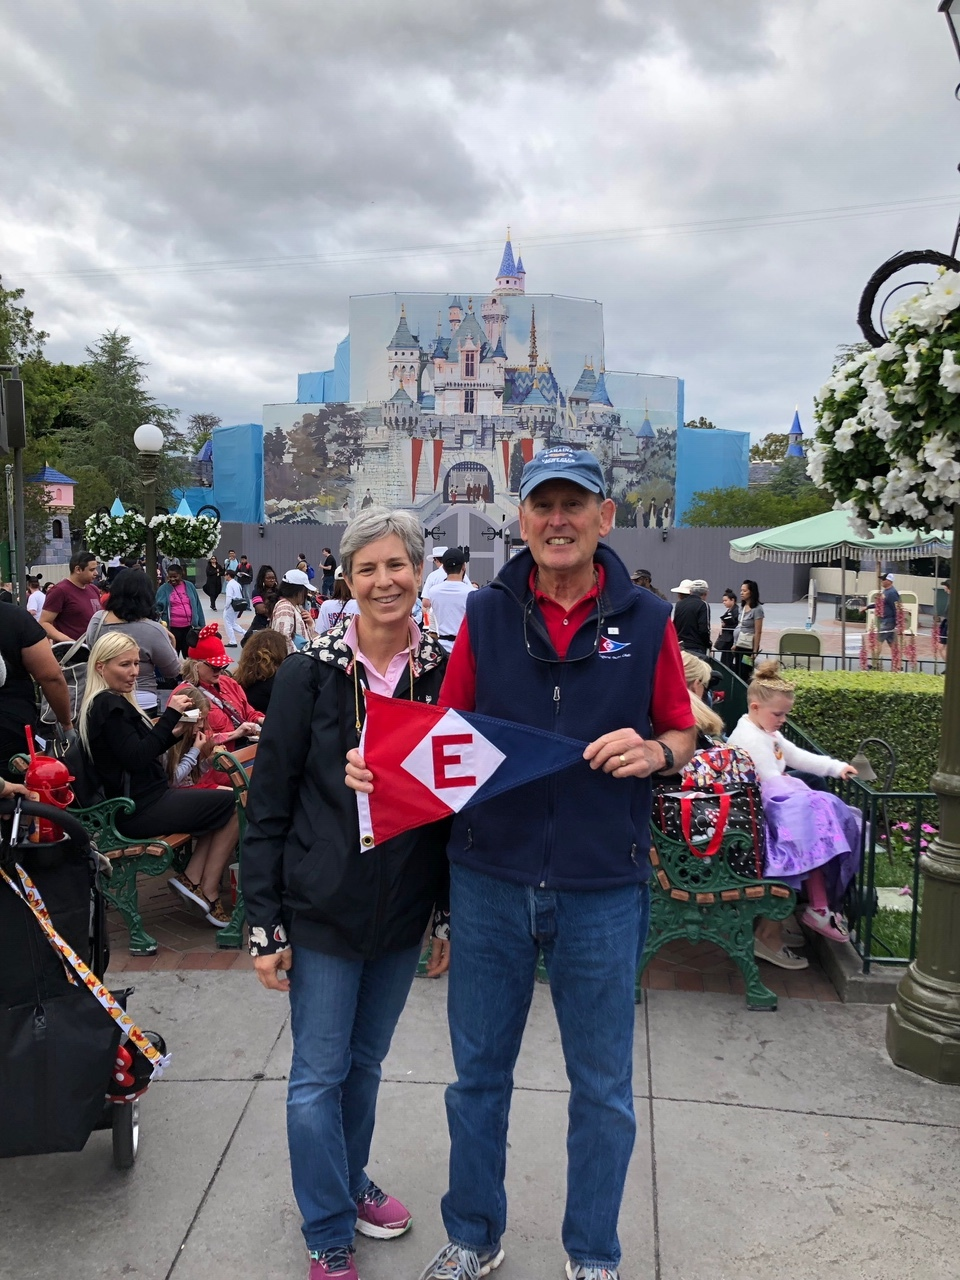 Gary and Jane Powell show their pride at the happiest place on earth—Disneyland!